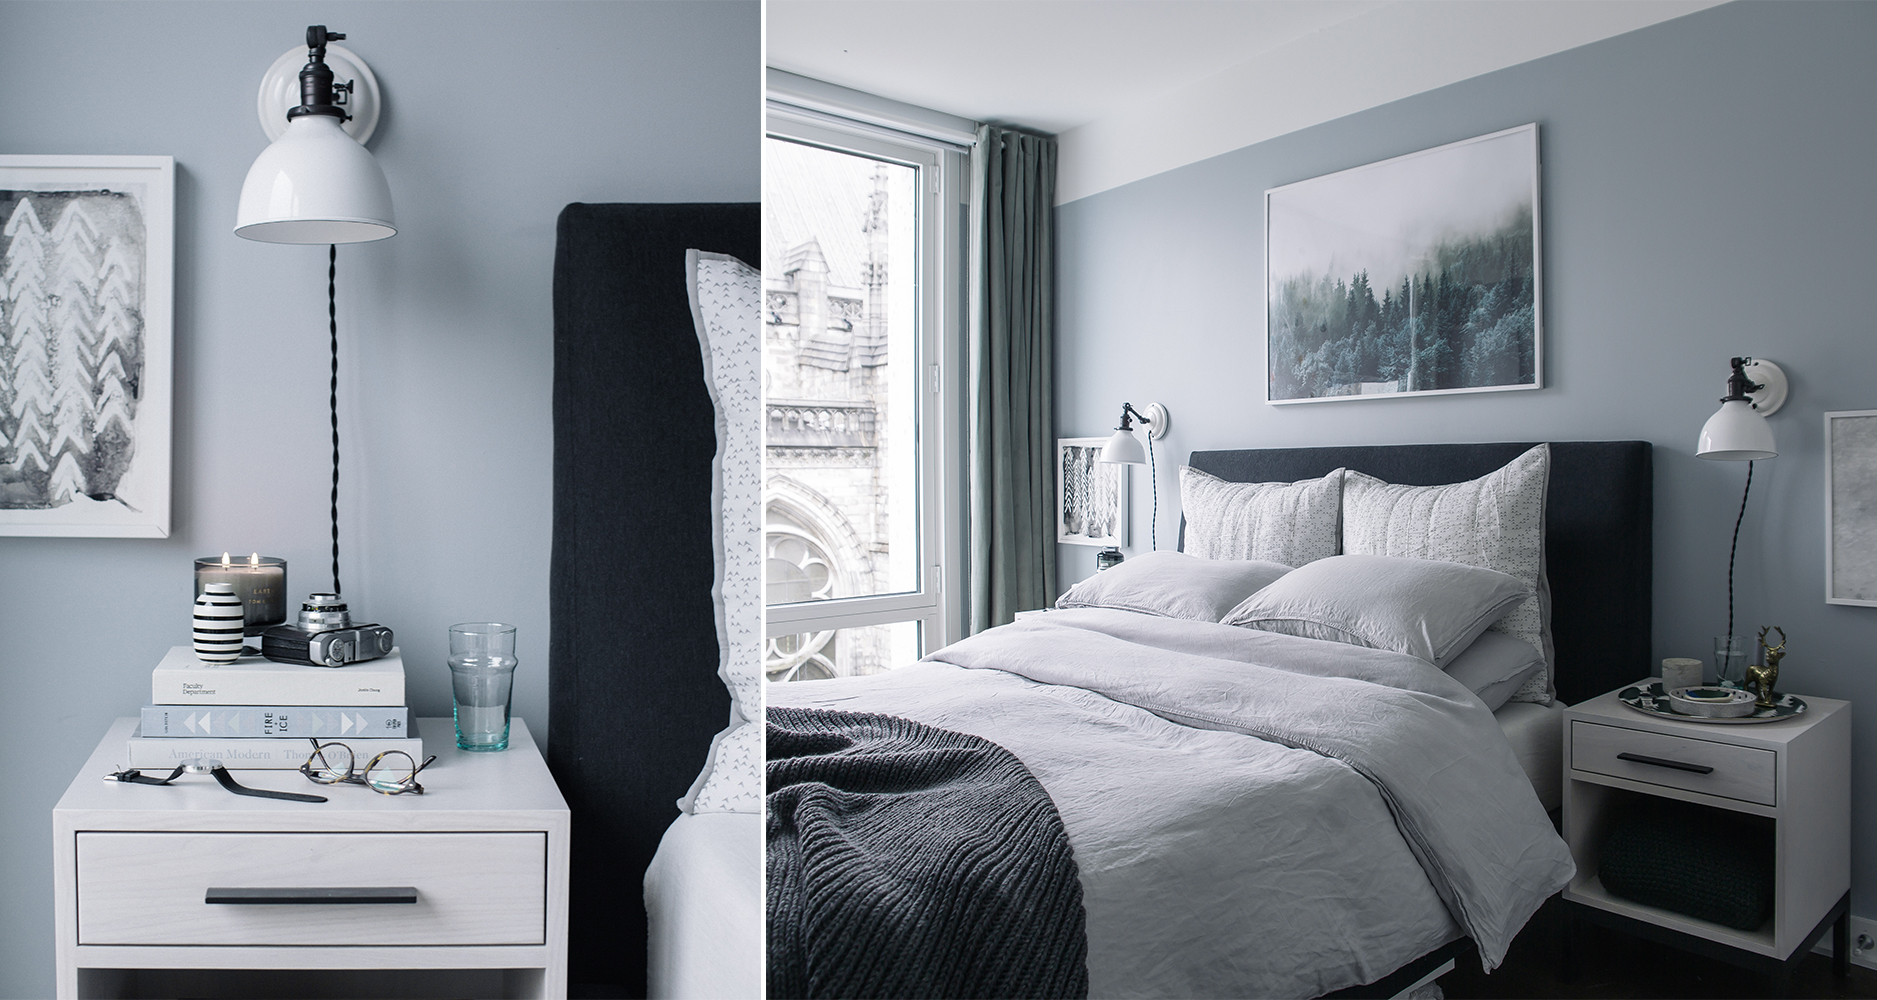 Inspiring Bedrooms Bedroom Makeover The Reveal Bright Bazaar By Will Taylor